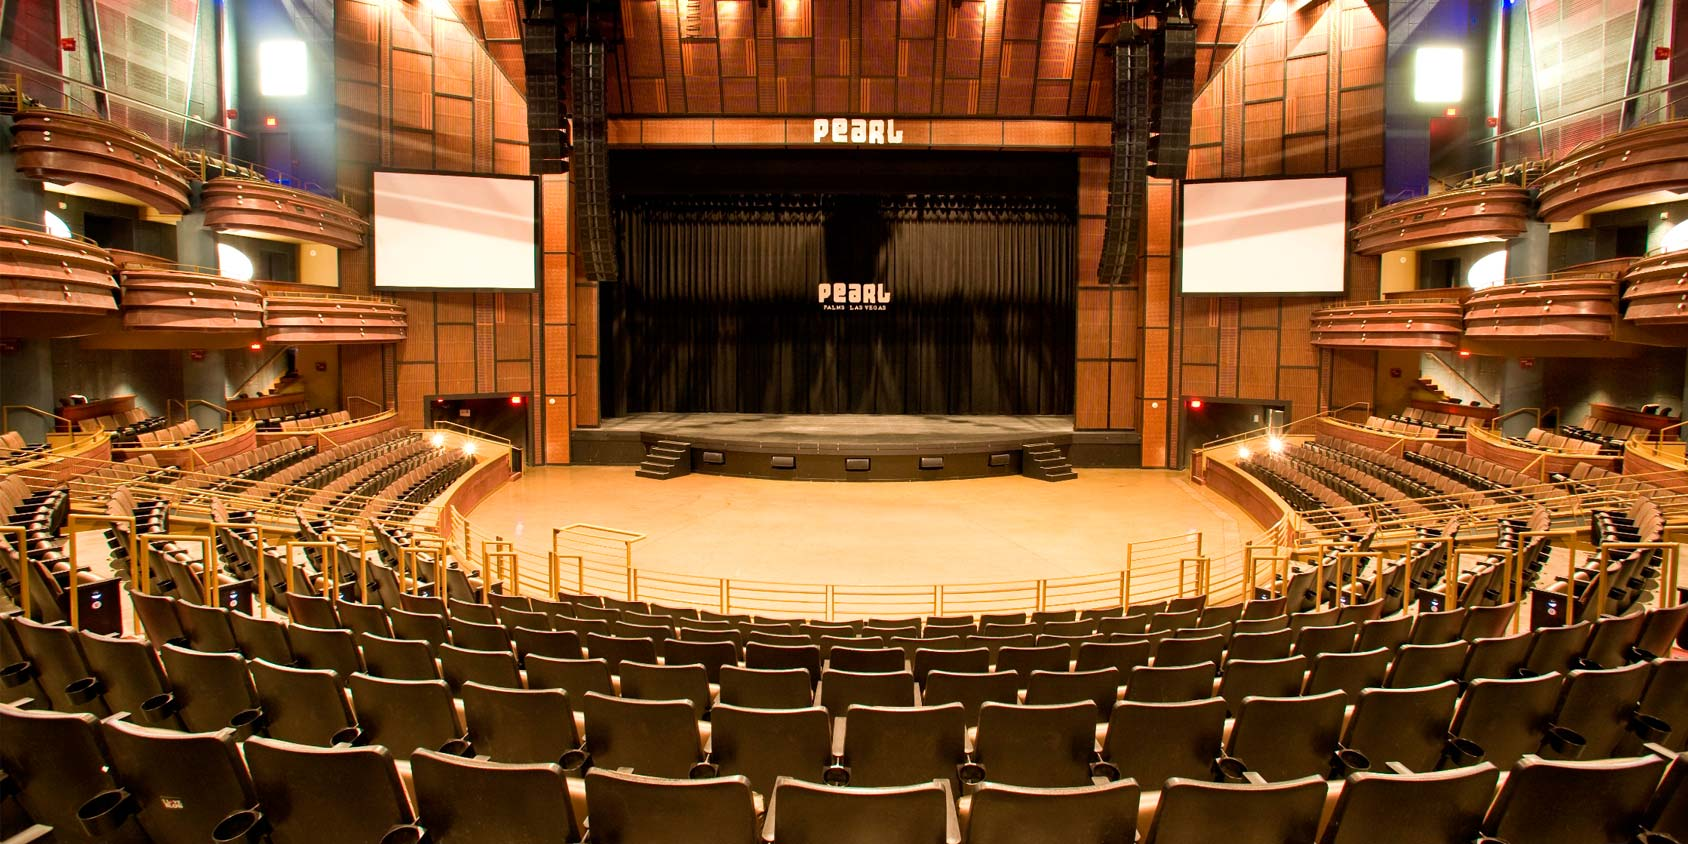 Entertainment Venues - The Pearl